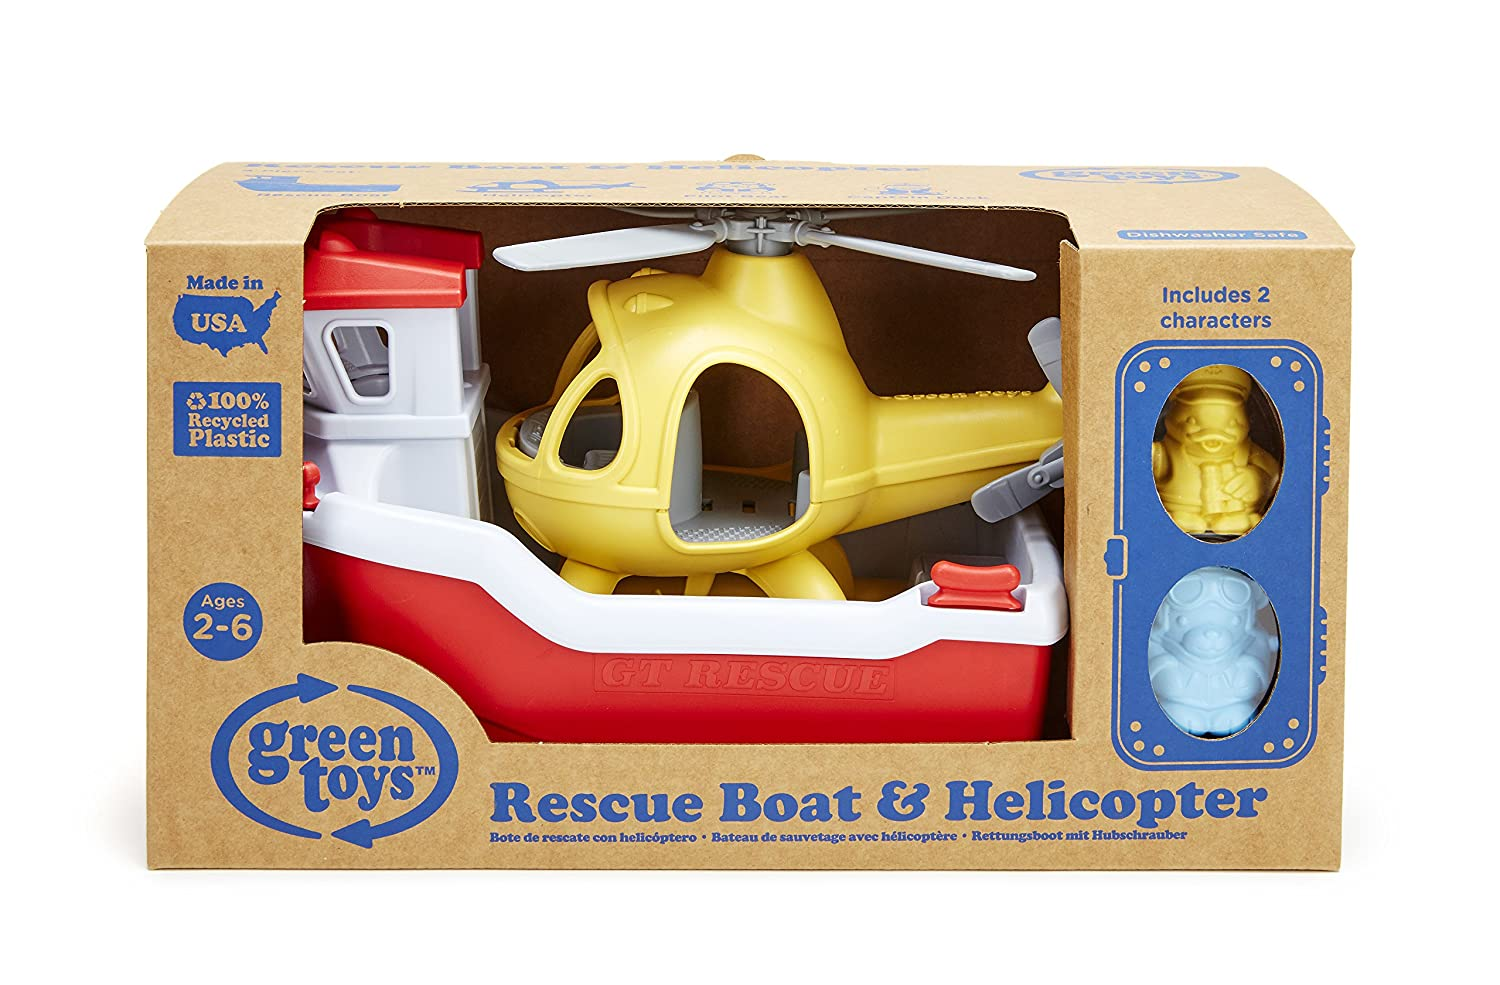 Amazon.com: Green Toys Rescue Boat with Helicopter: Toys & Games